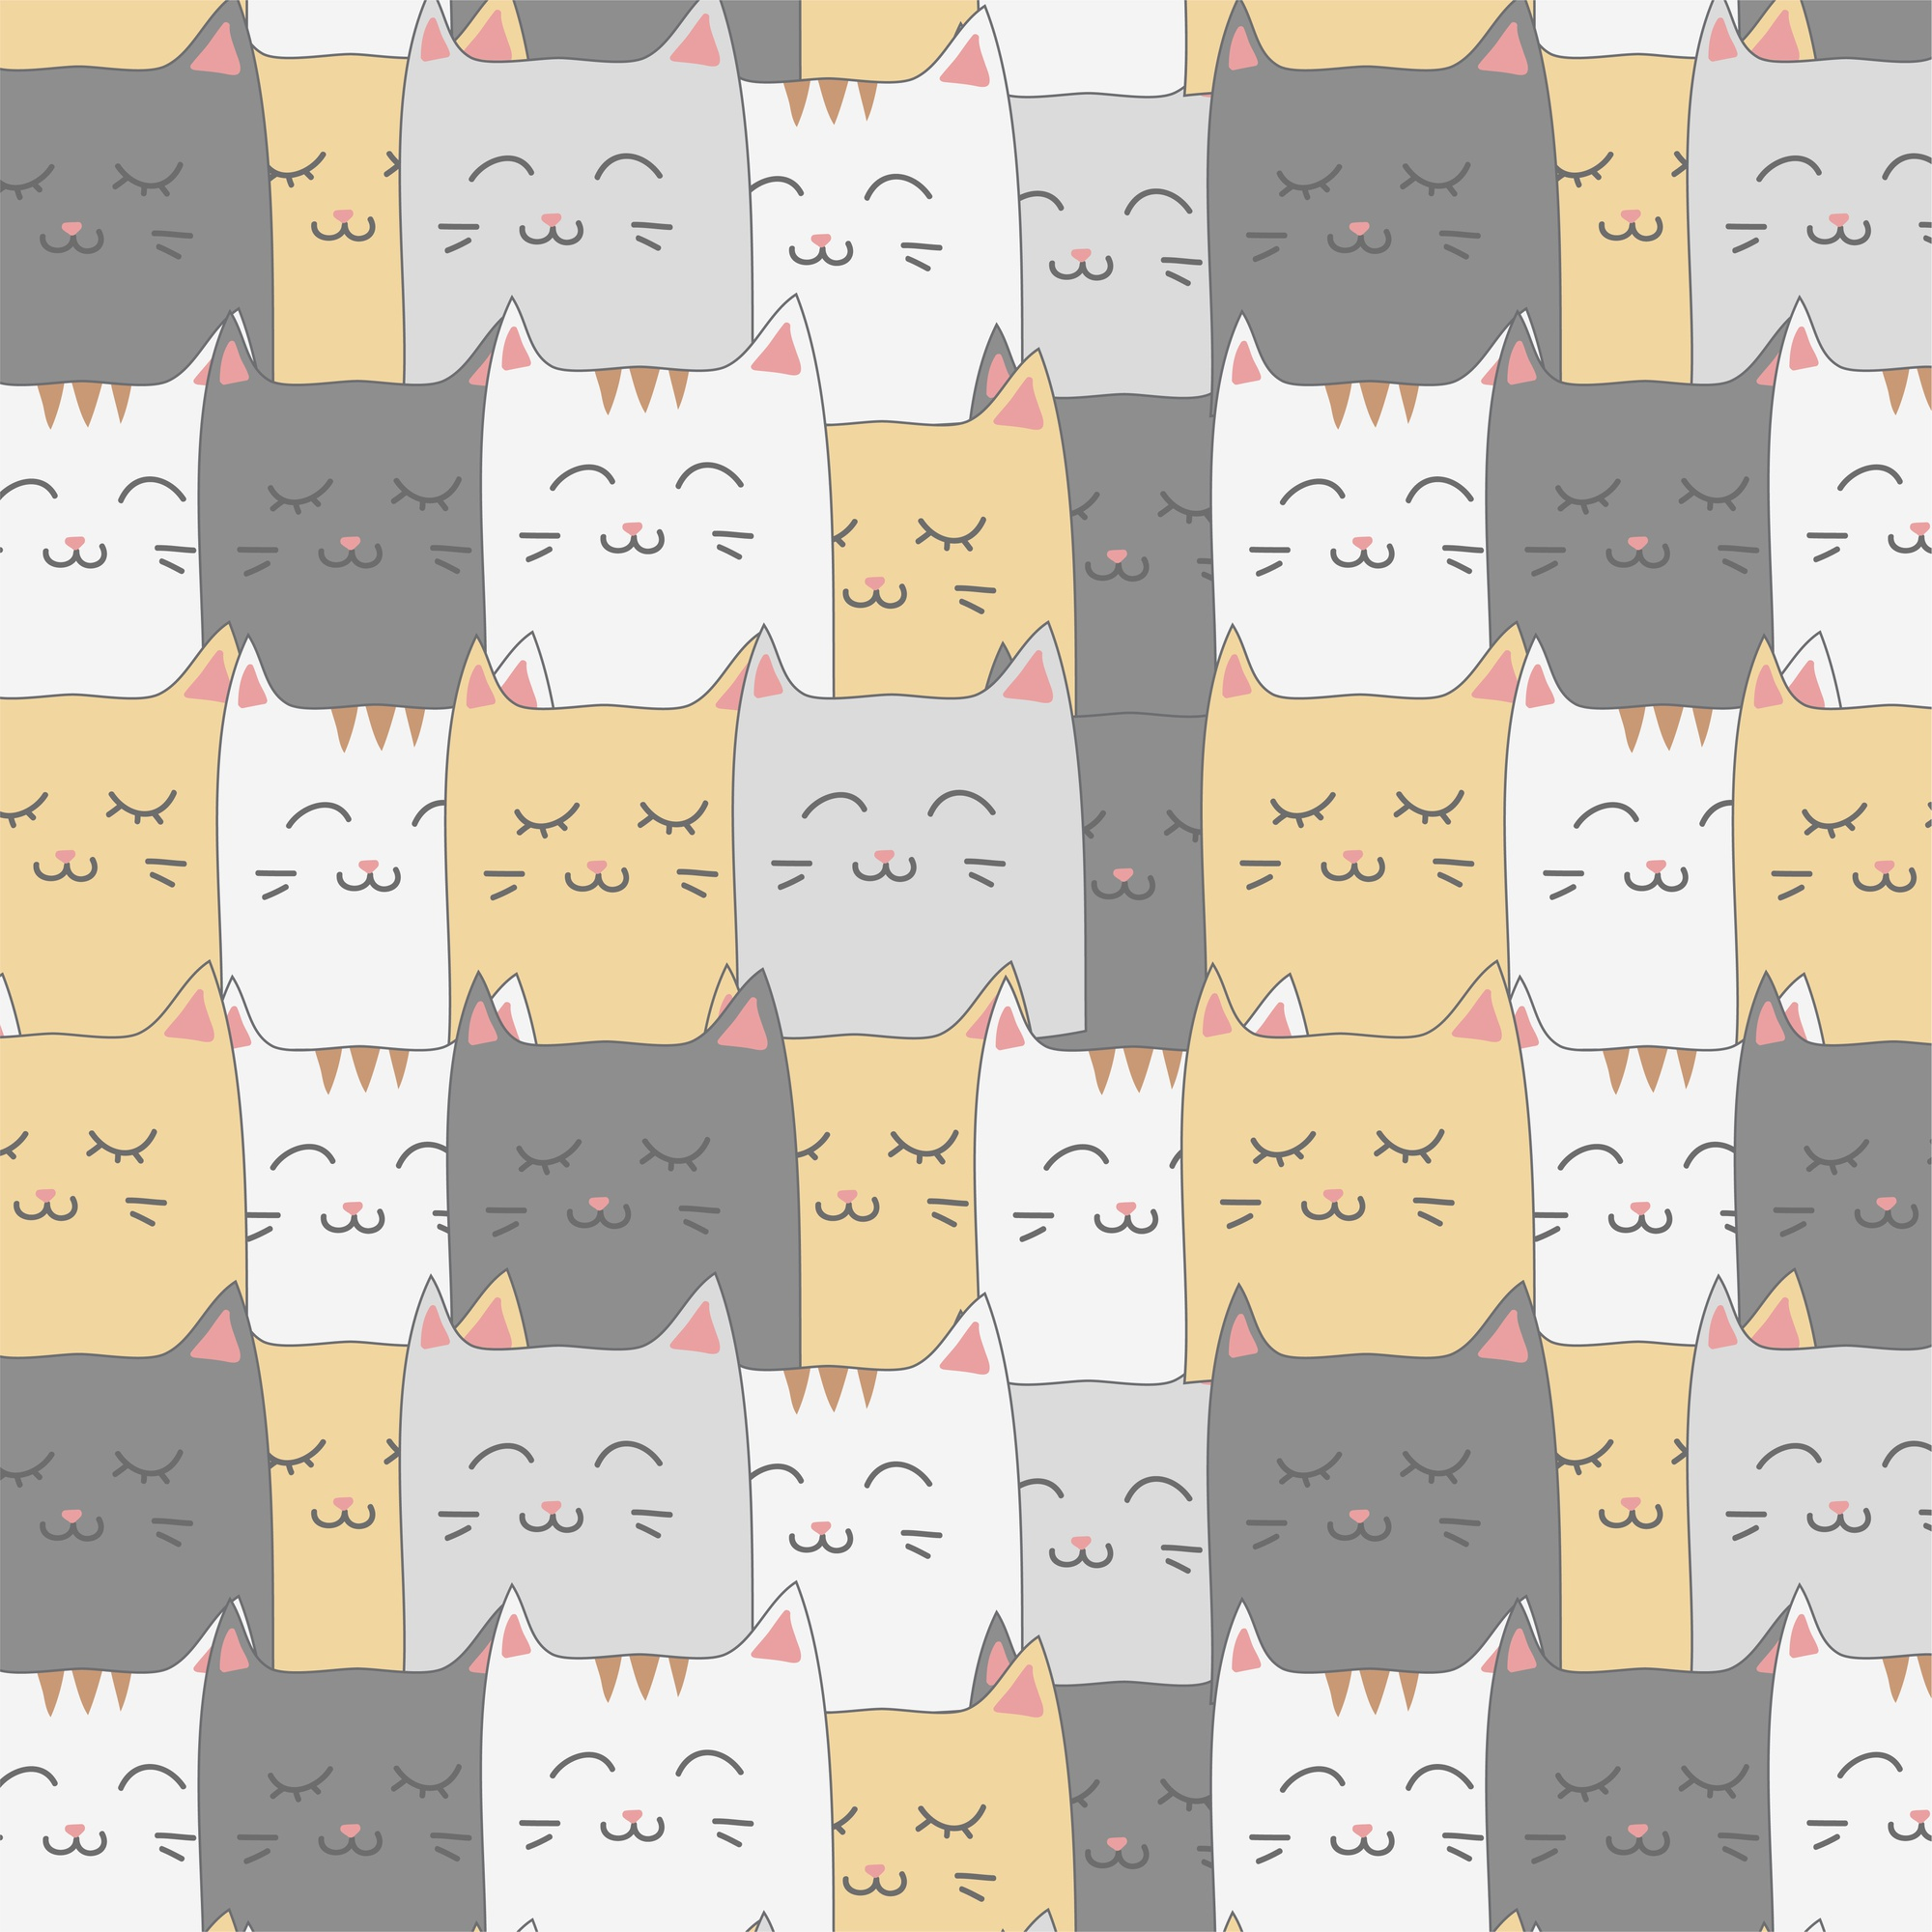 Cute adorable cartoon cat faces seamless pattern background